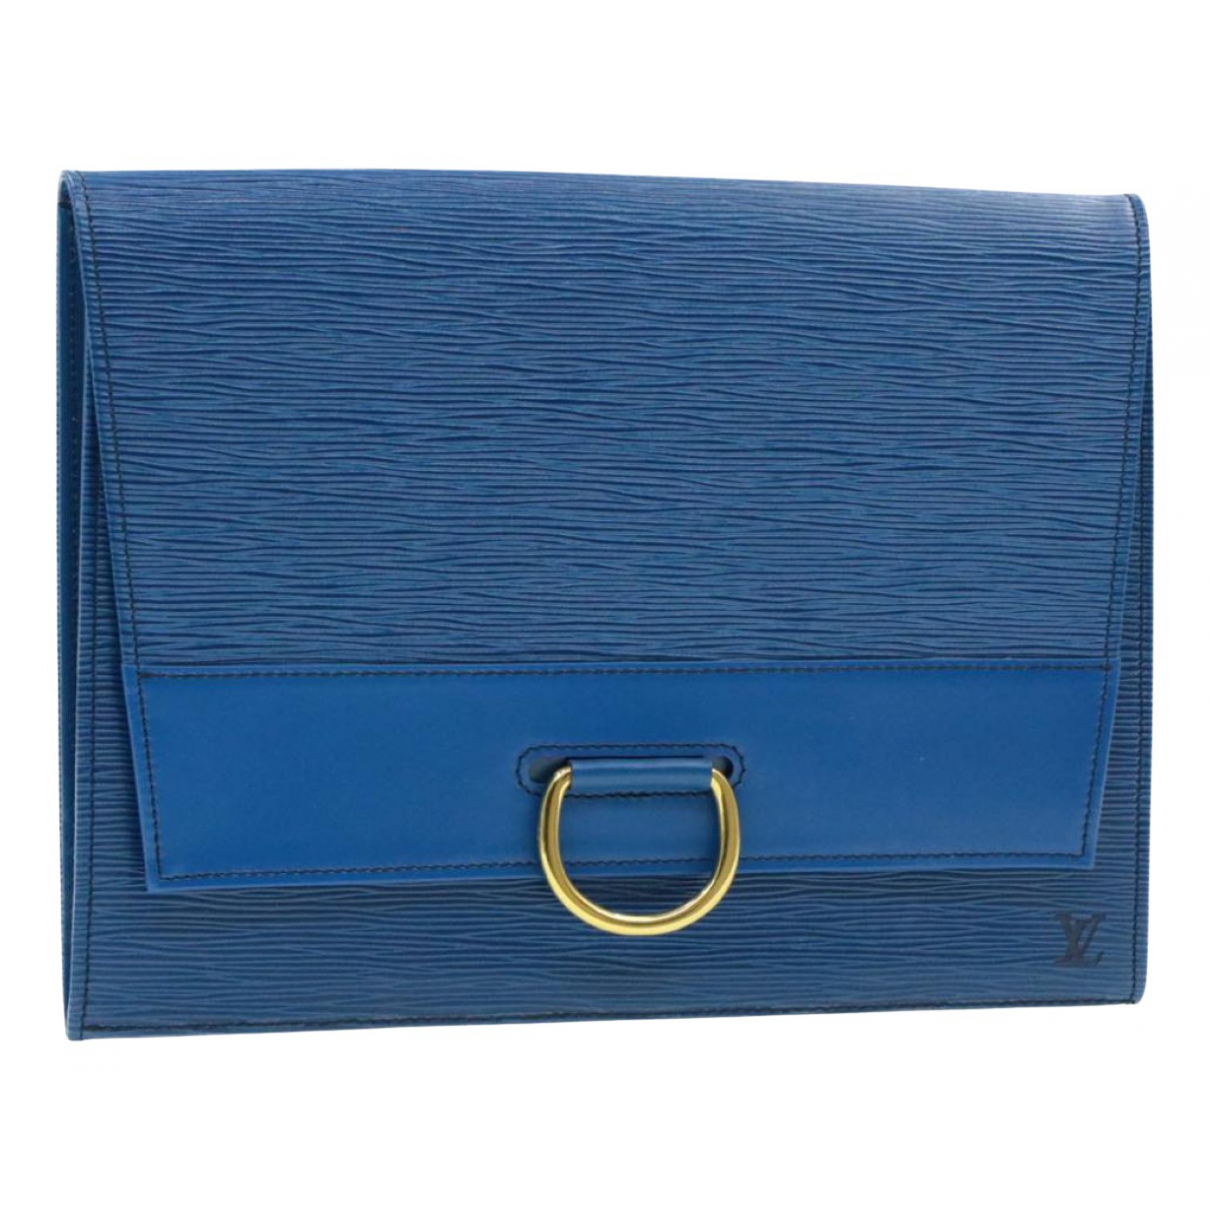 Louis Vuitton \N Clutch in  Blau Leder